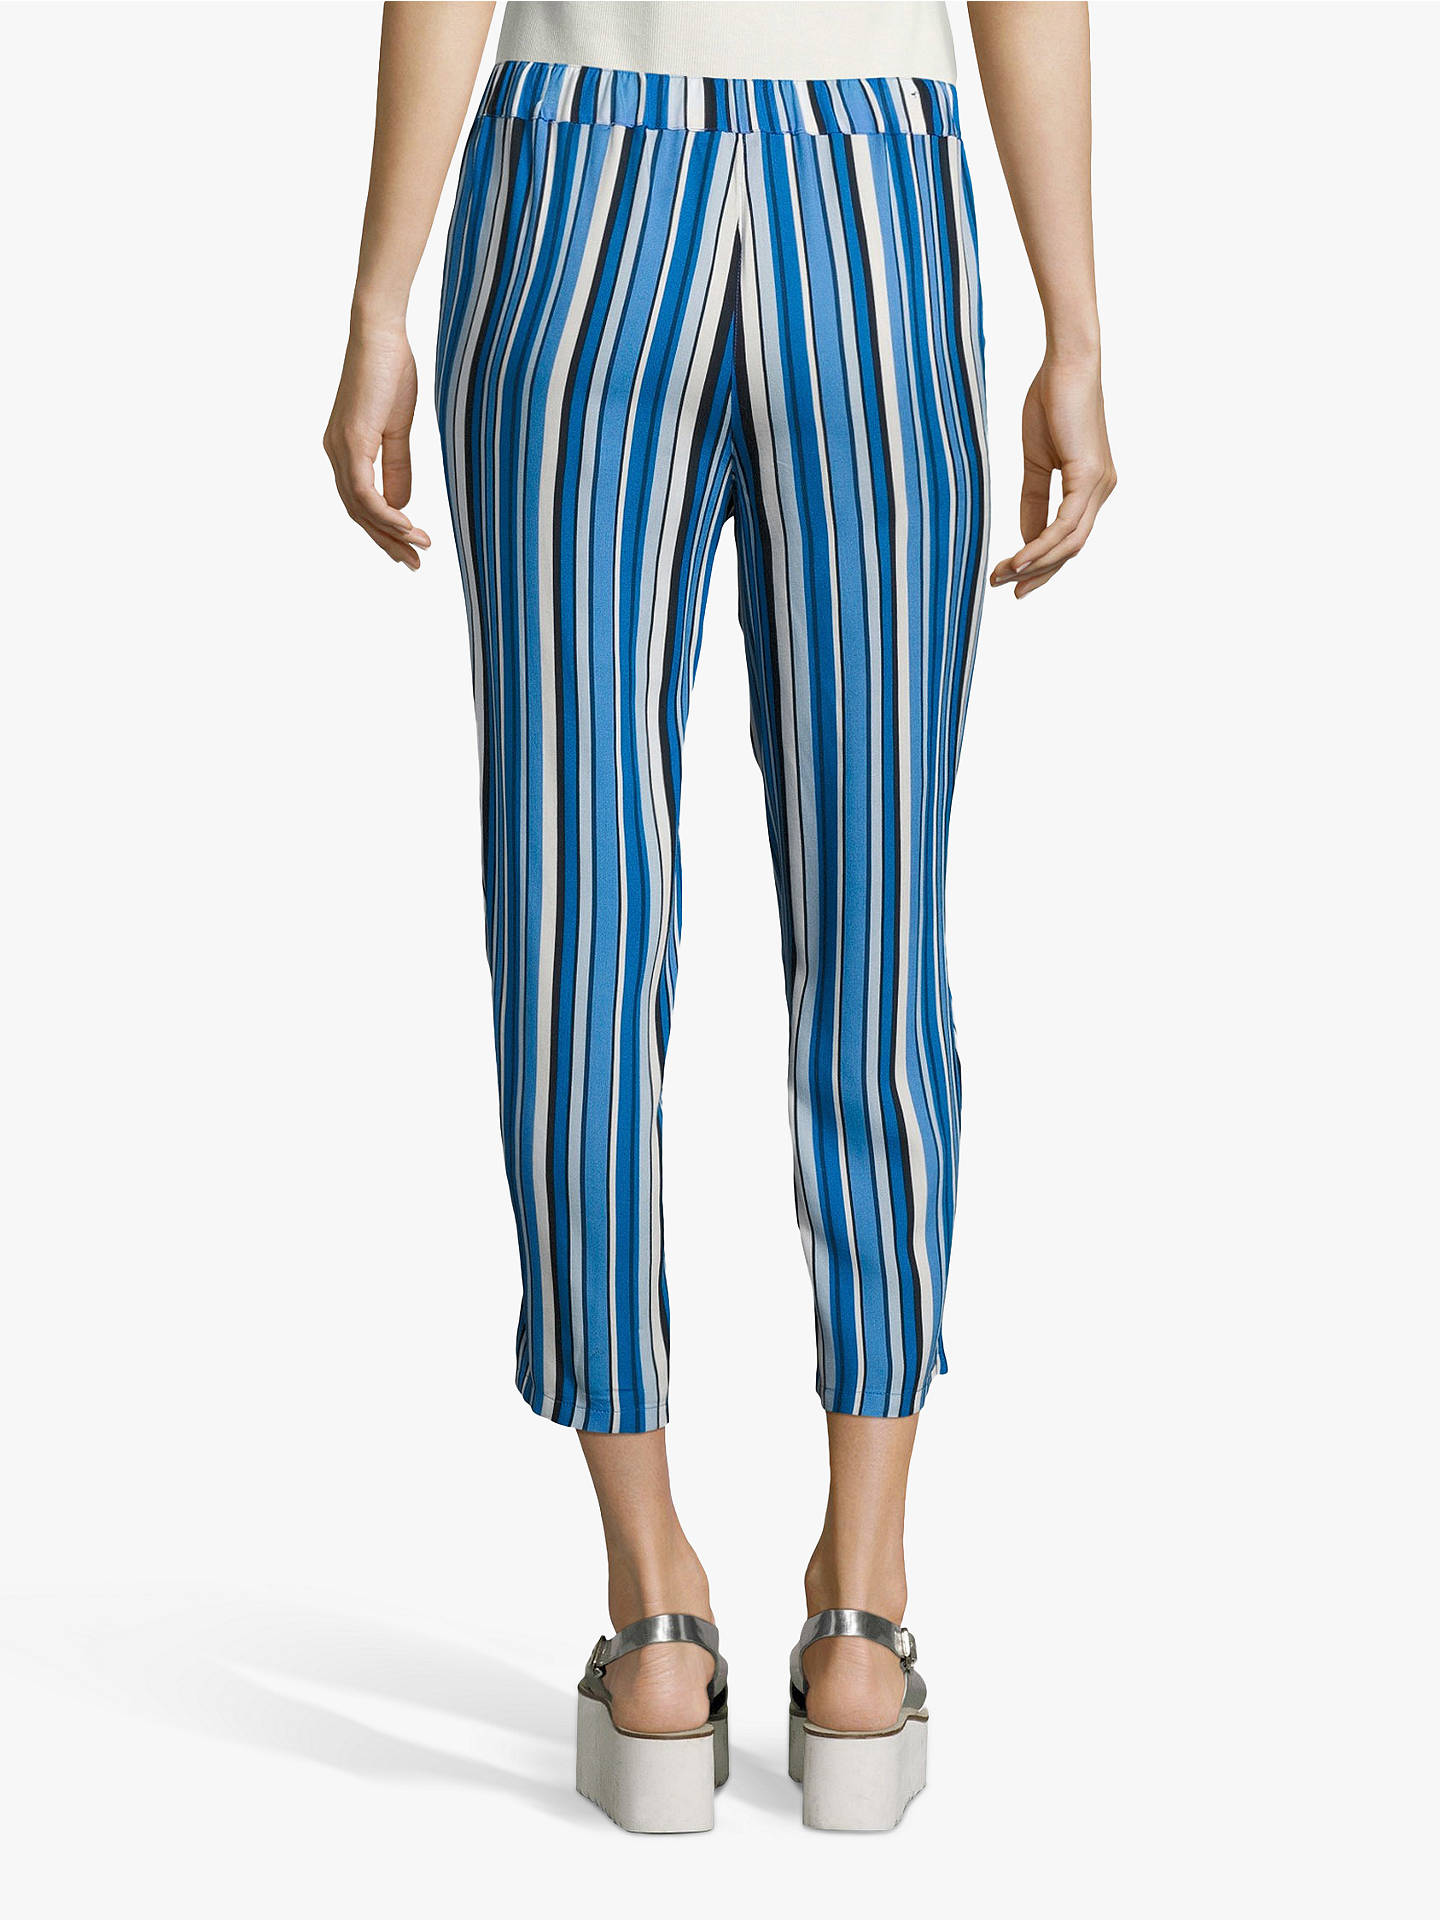 Buy Betty Barclay Cropped Stripe Trousers, Dark Blue/Blue, 16 Online at johnlewis.com